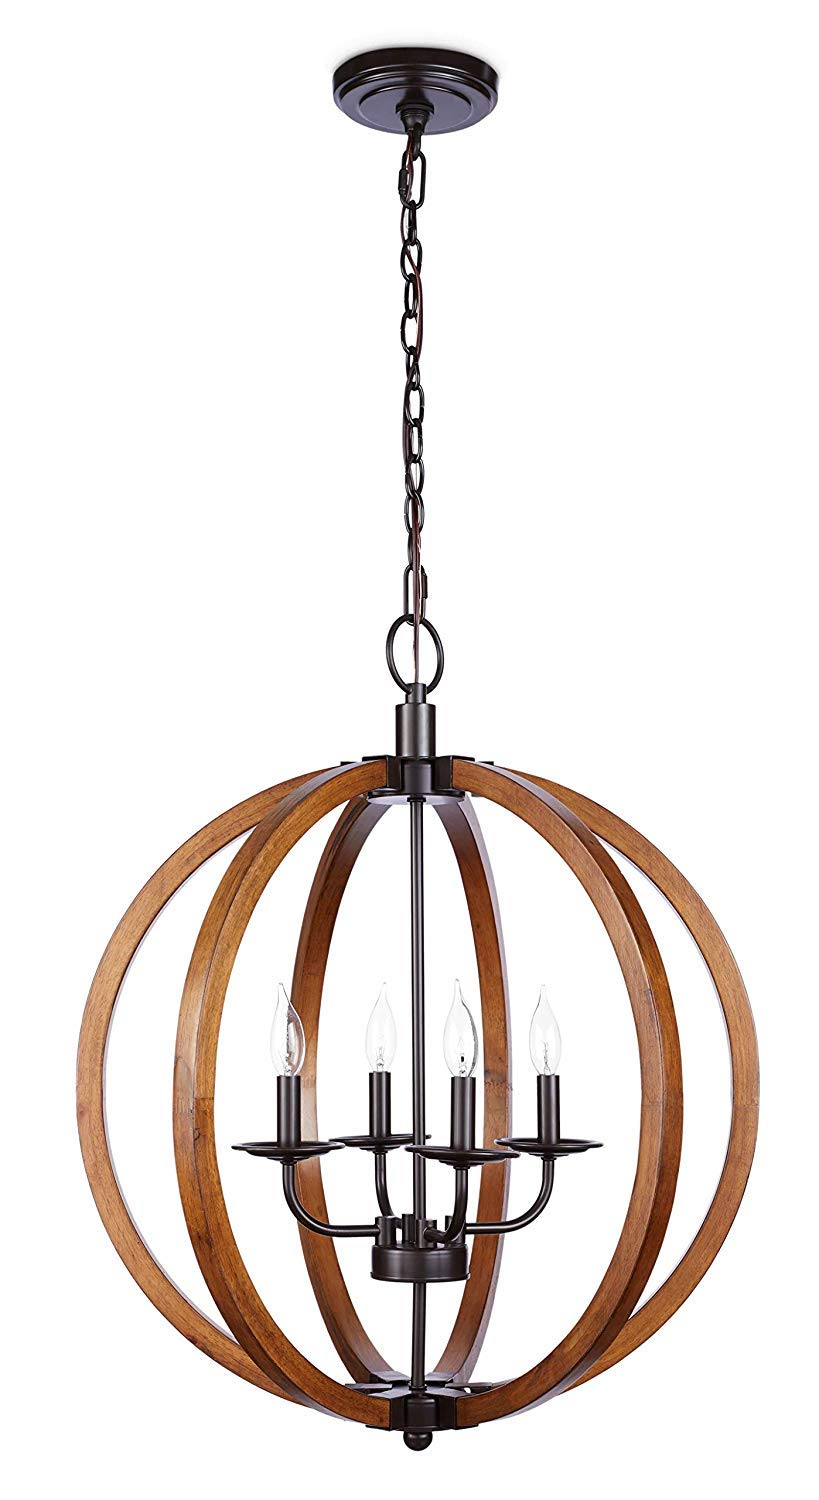 Decomust 20 W x 22.6 H Orb Global Contemporary Wood Frame Chandelier Foyer Candle-Style Rustic Pendant Lamp